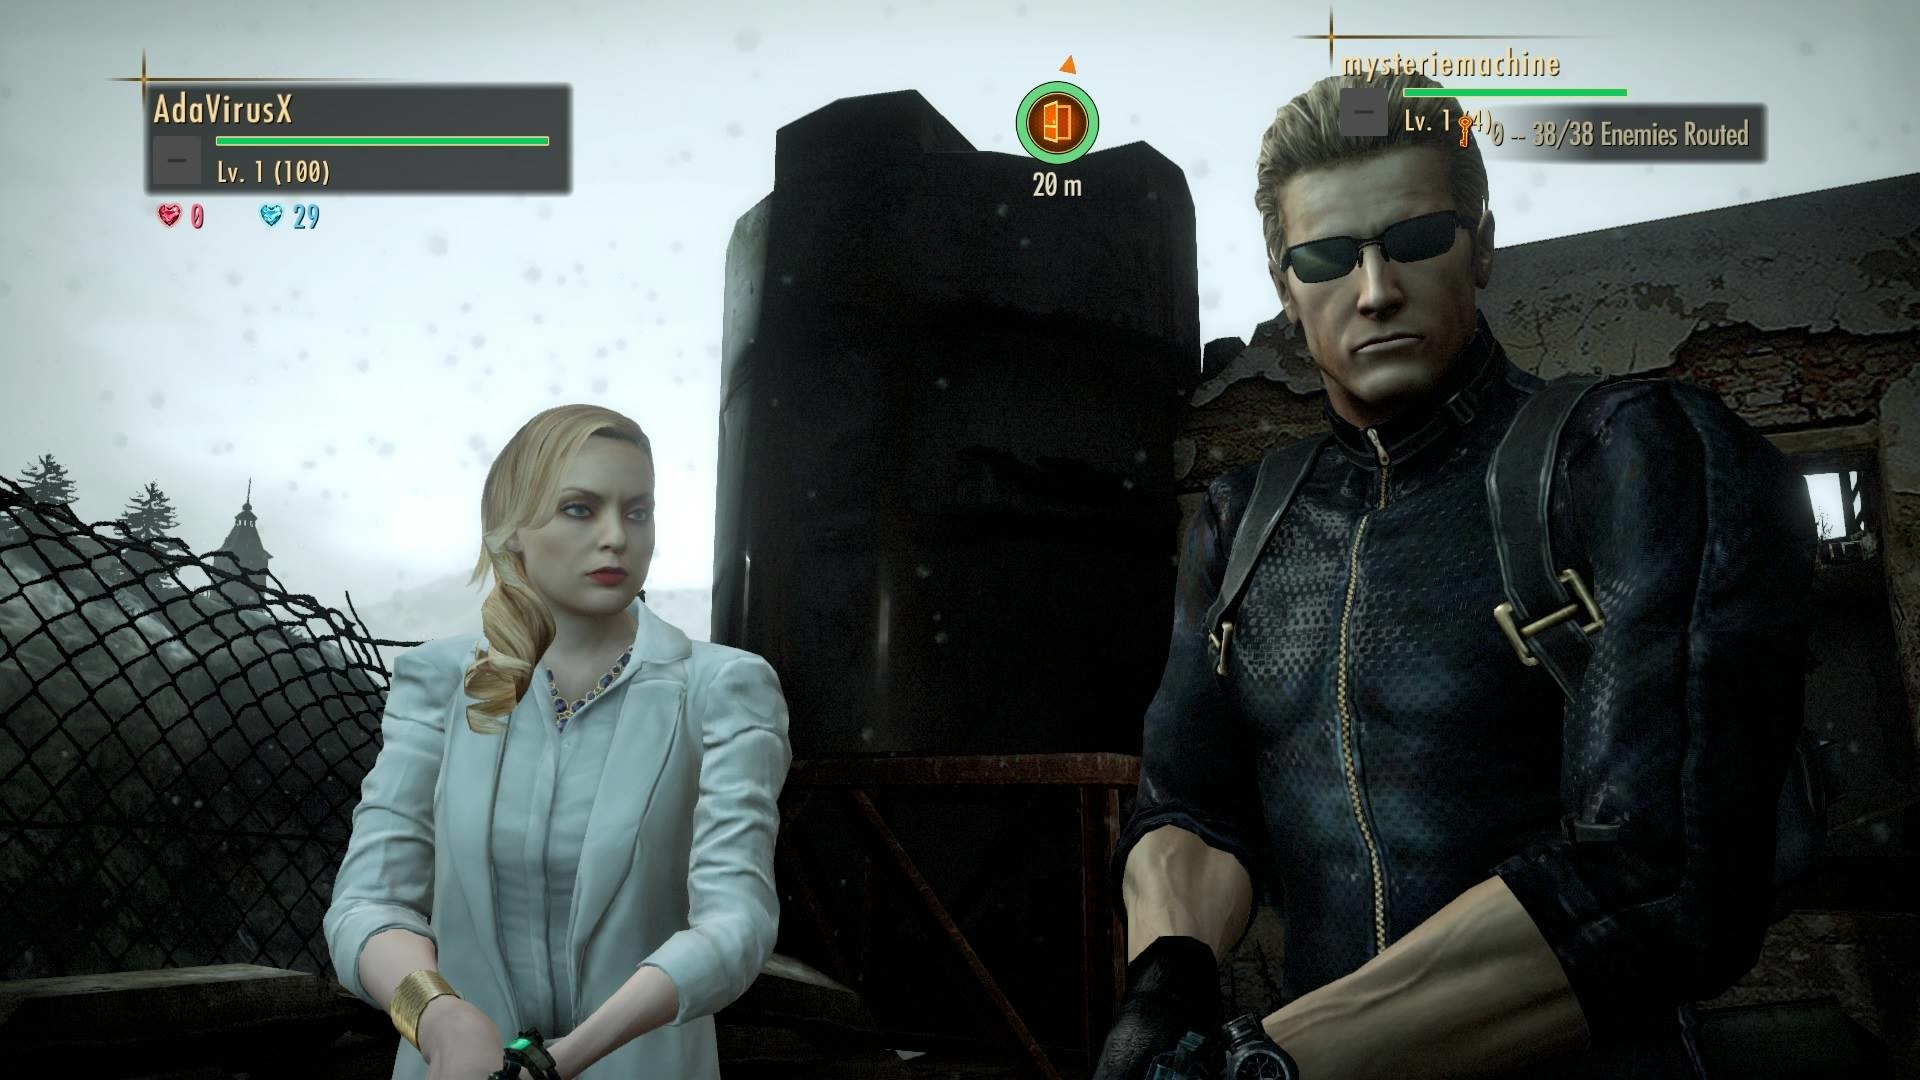 Res: 1920x1080, Albert and Alex Wesker by FearTheOverseer Albert and Alex Wesker by  FearTheOverseer